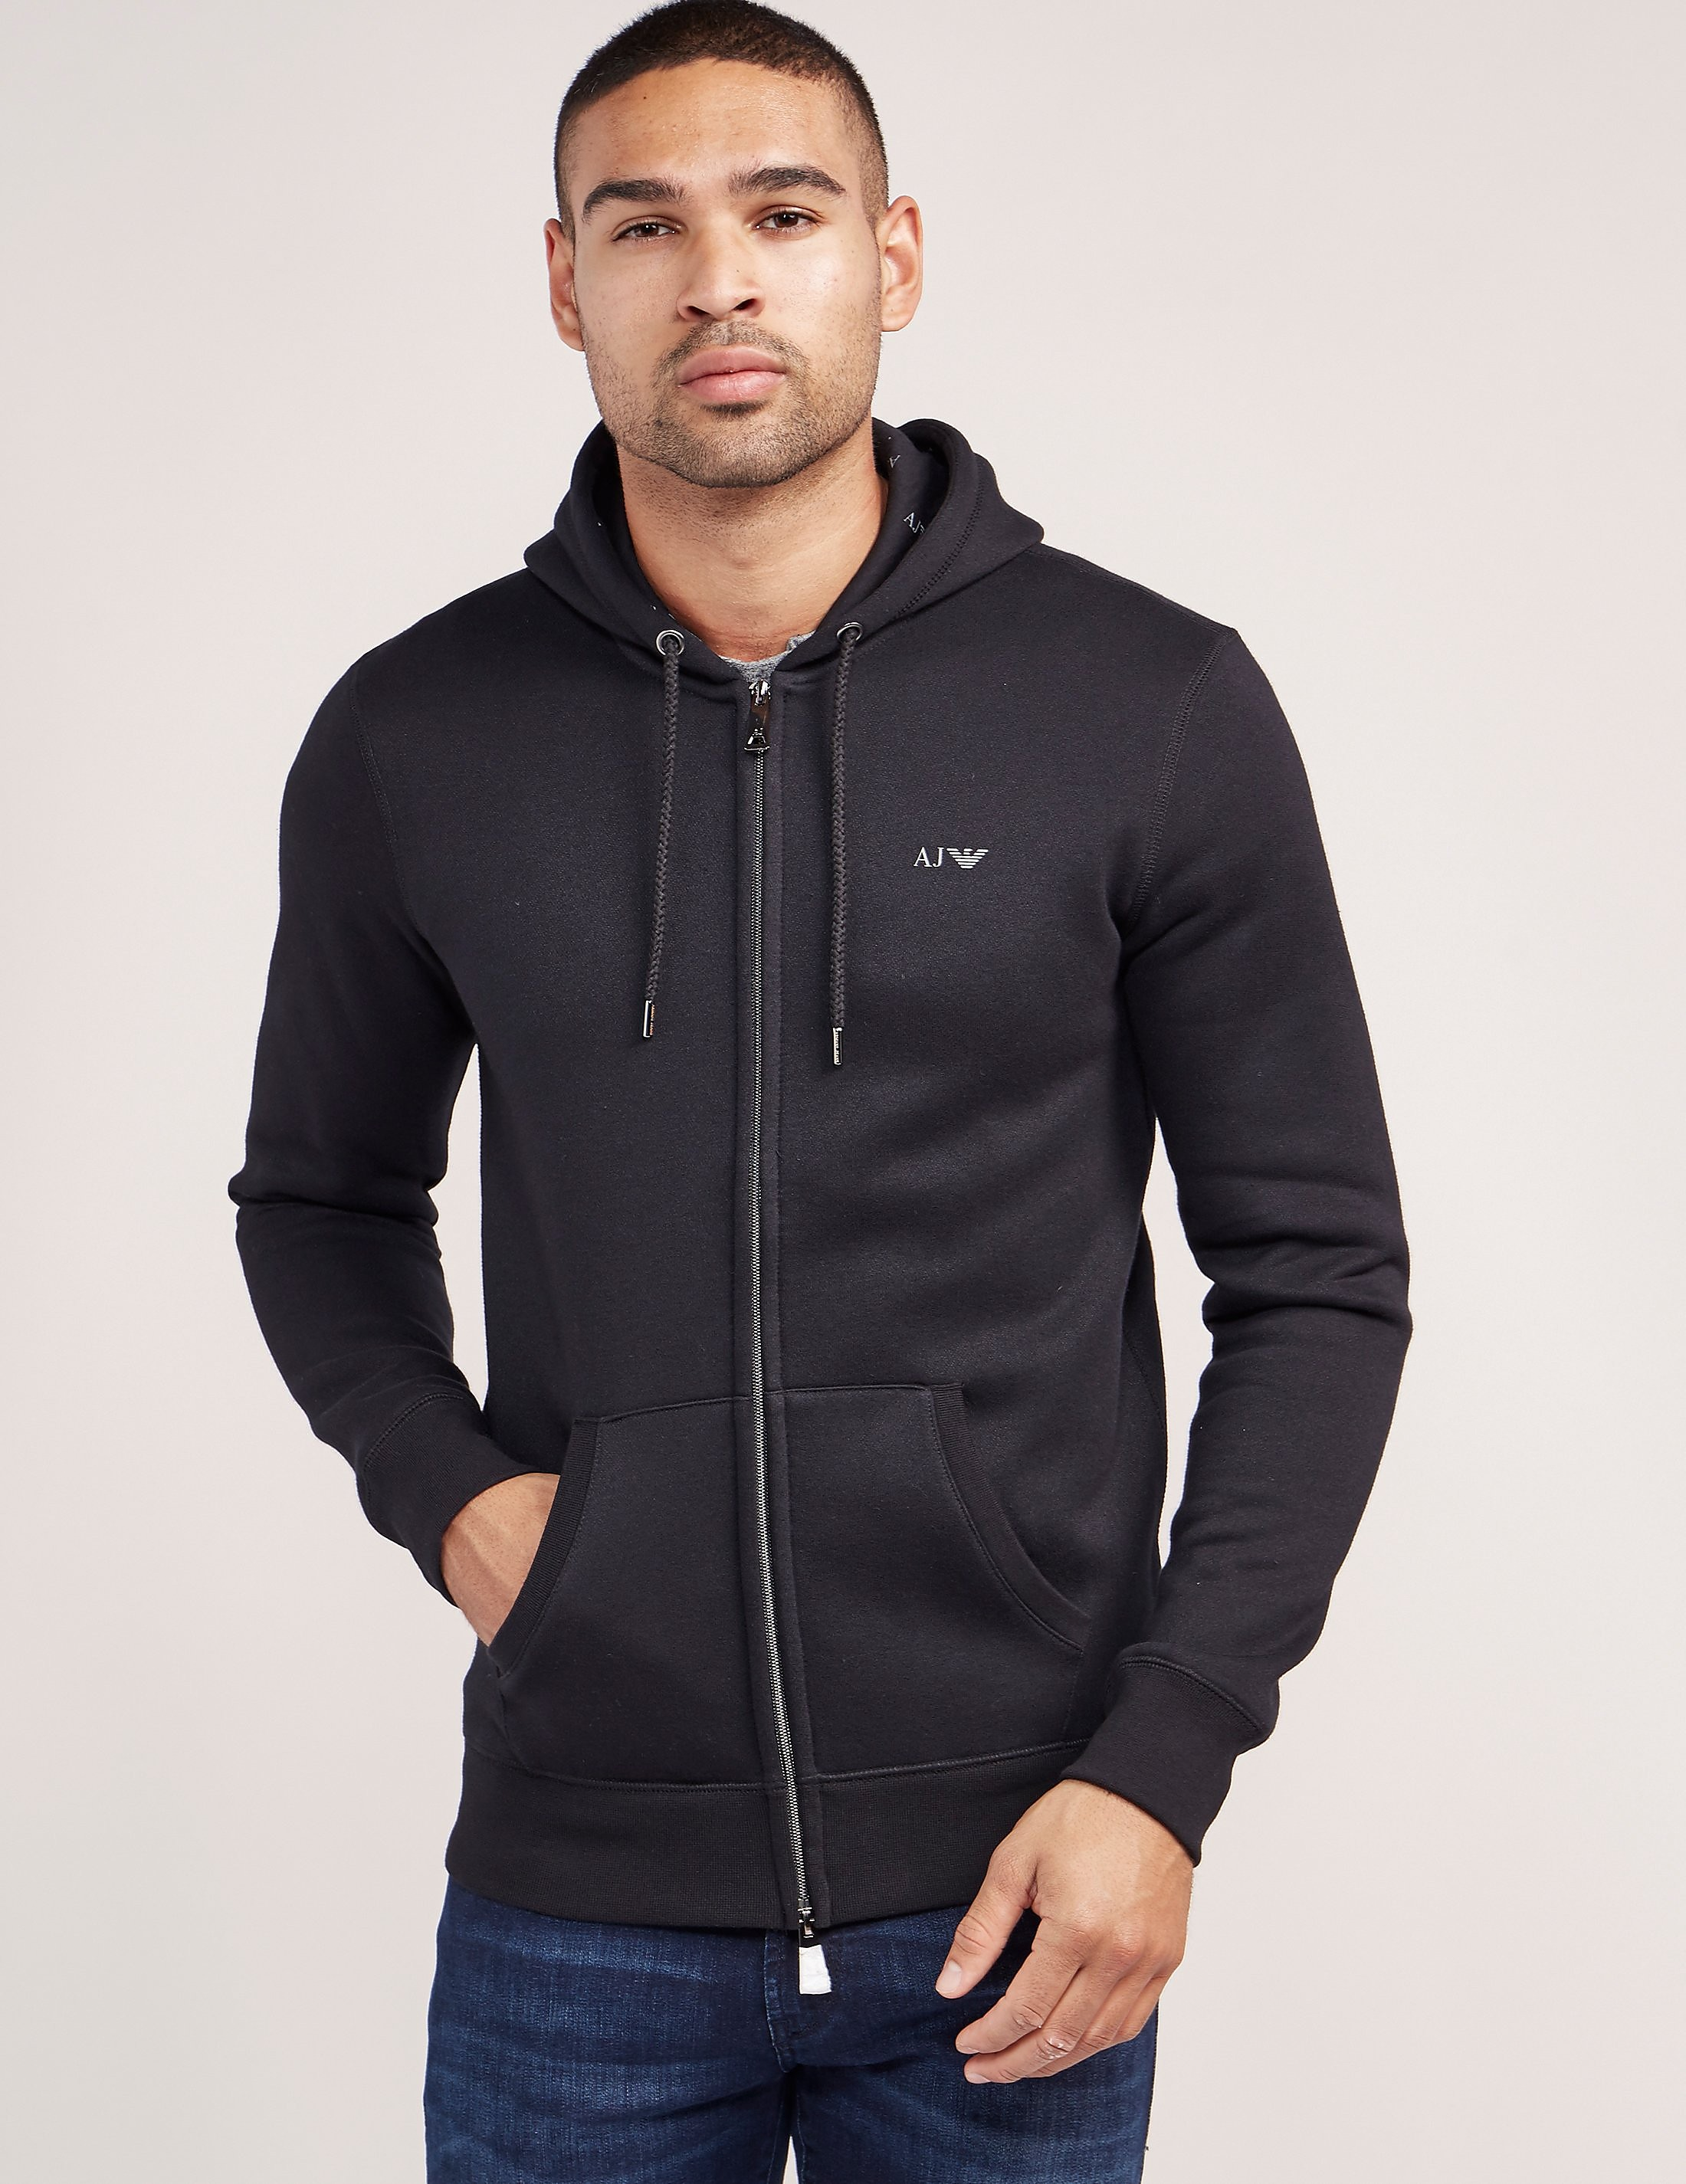 Armani Jeans RF Zip Up Track Top